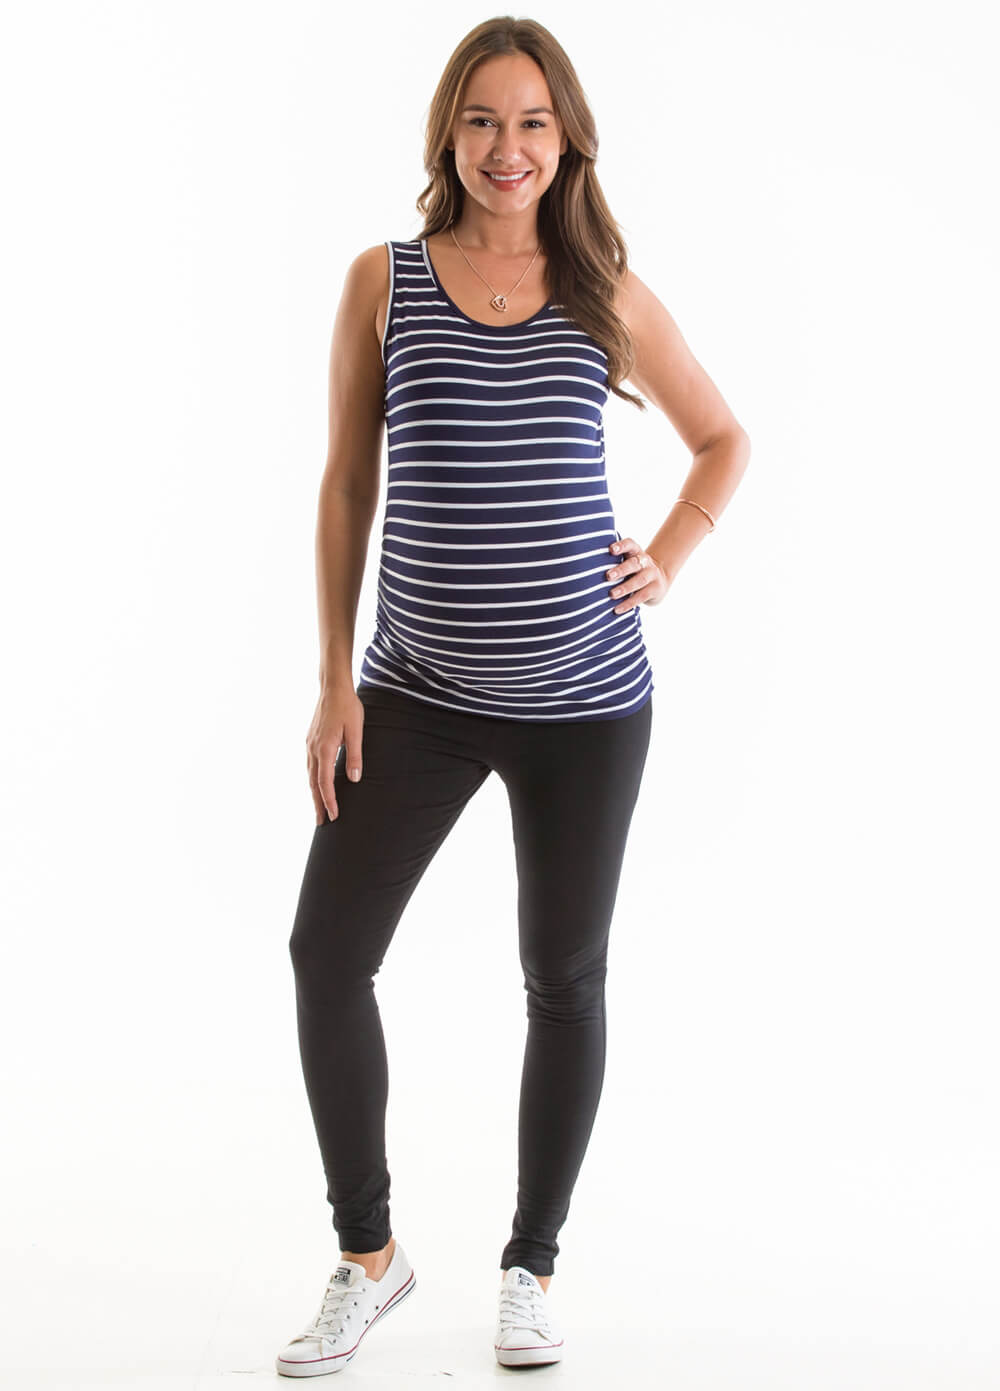 Arles Maternity Tank Top in Navy Stripes by Lait & Co